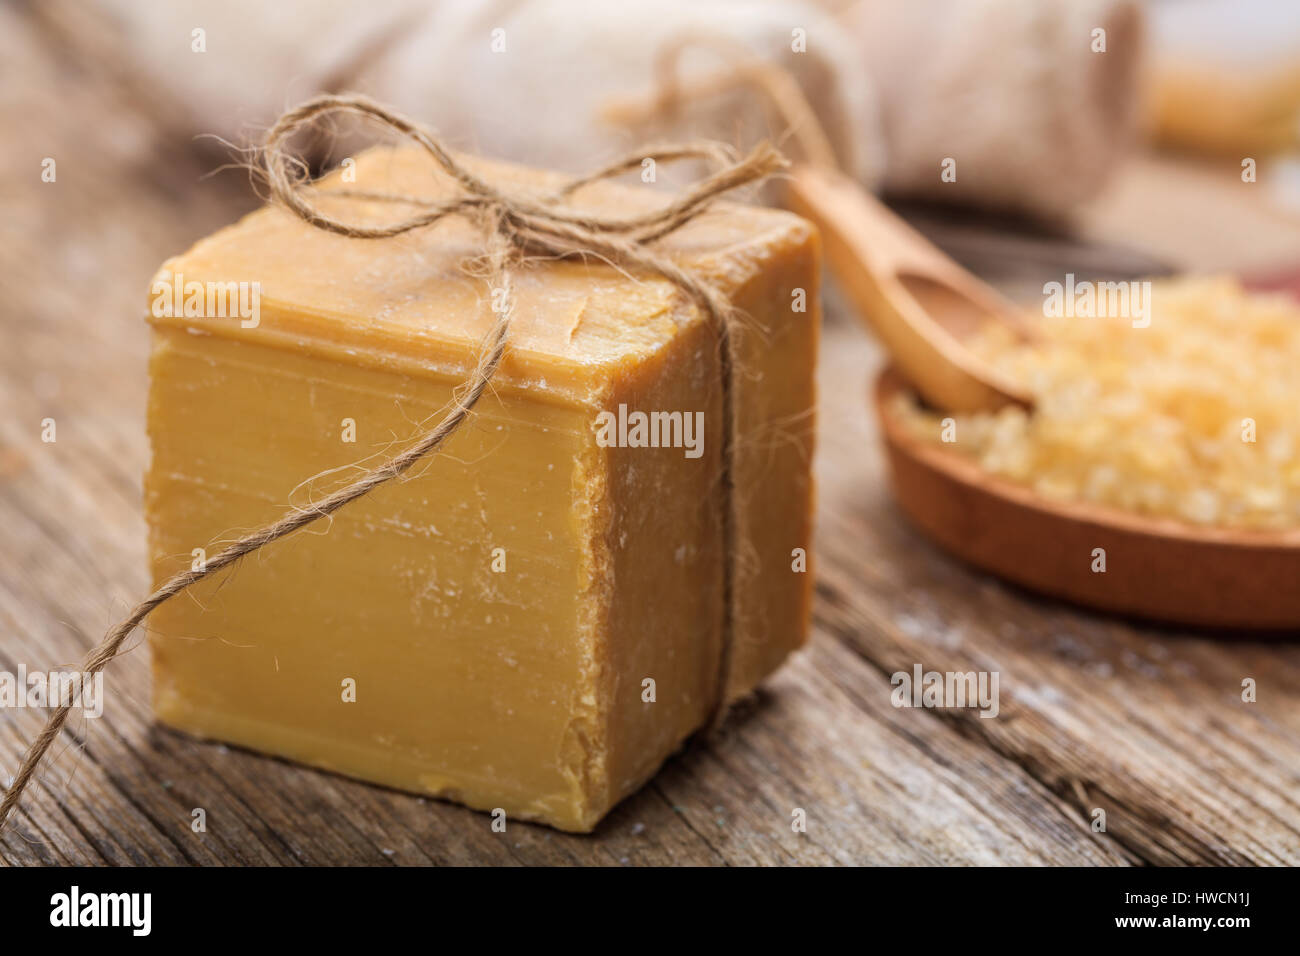 Natural handmade soap bar on wooden background - Stock Image